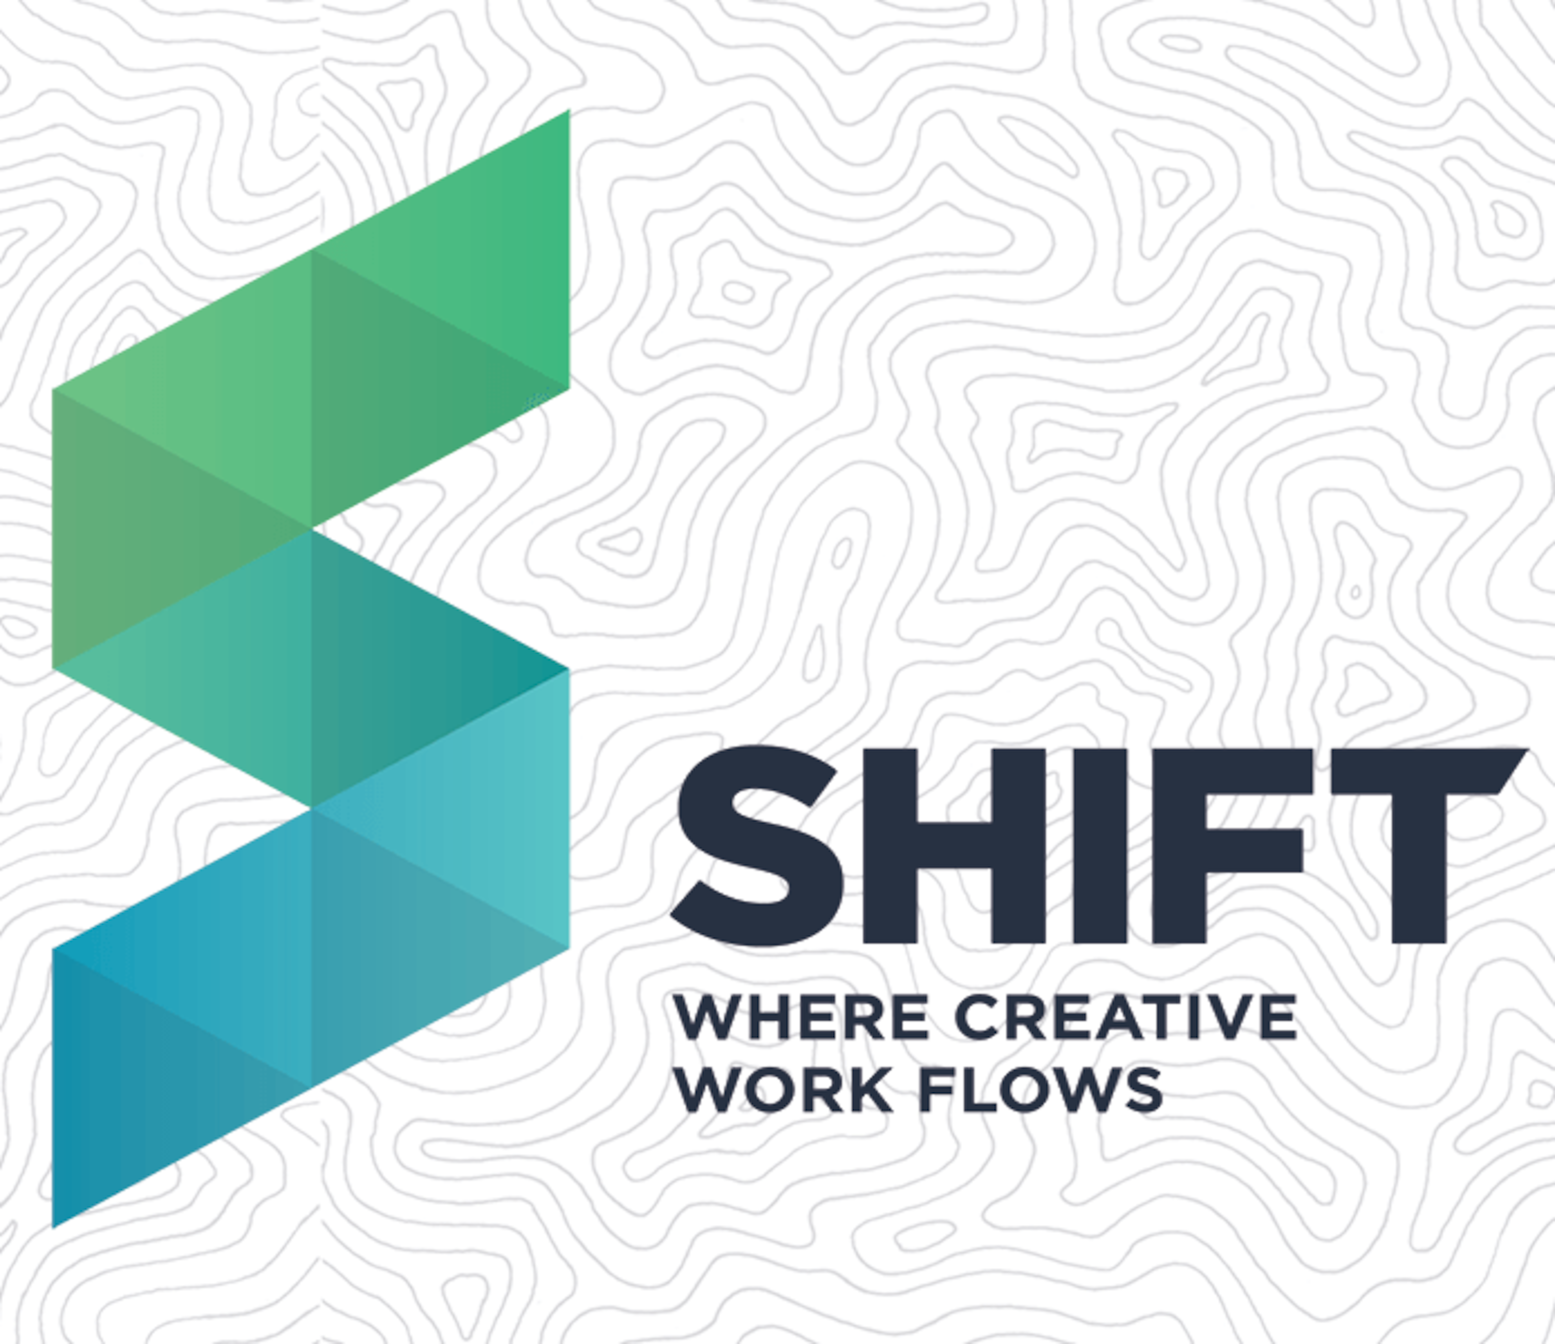 SHIFT provides workflow & security solutions to media companies, so content creators can focus on telling stories that change the world.  (ACQUIRED).